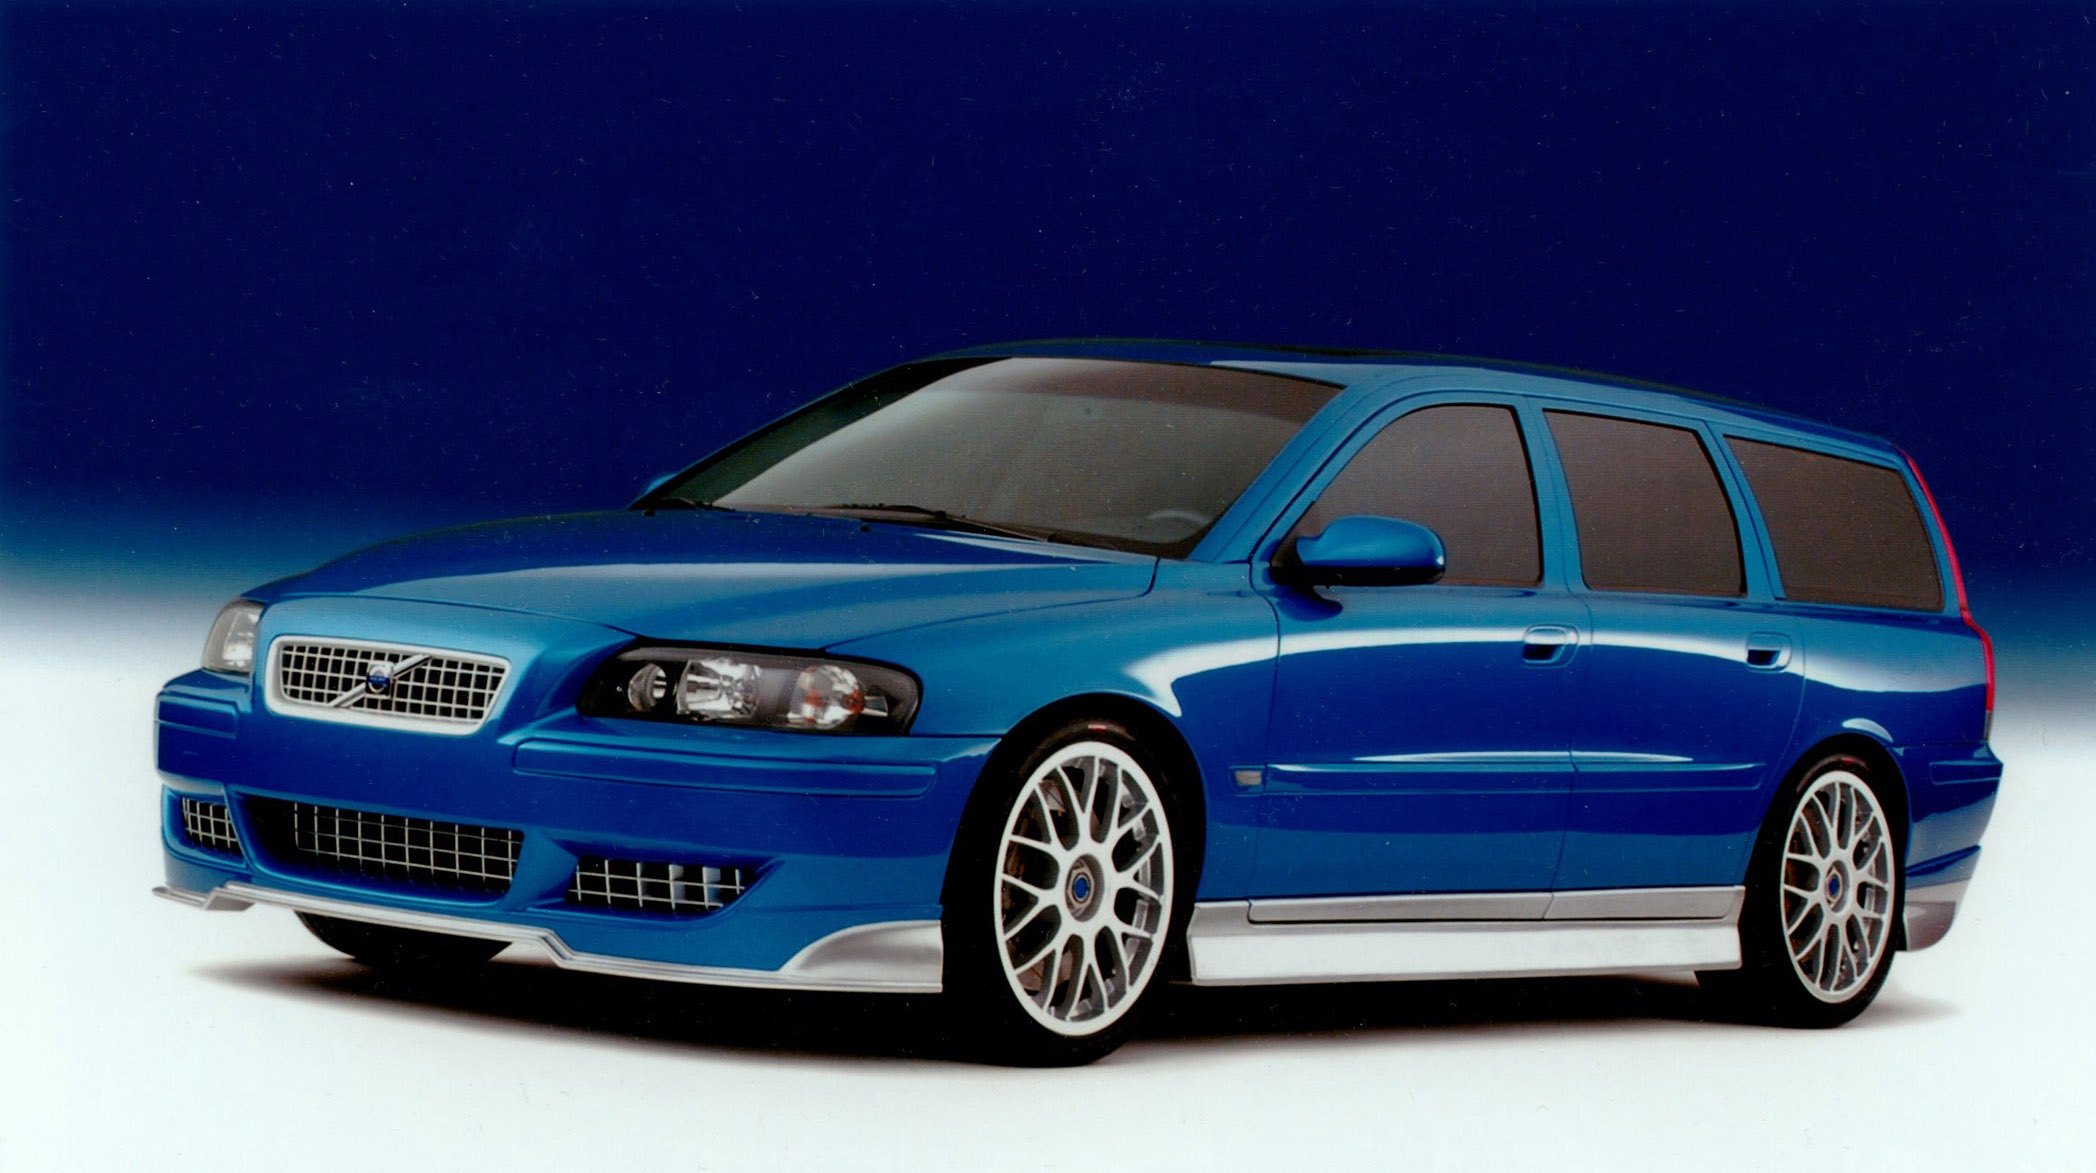 Volvo V70 Concept Car 2001 Picture 35808